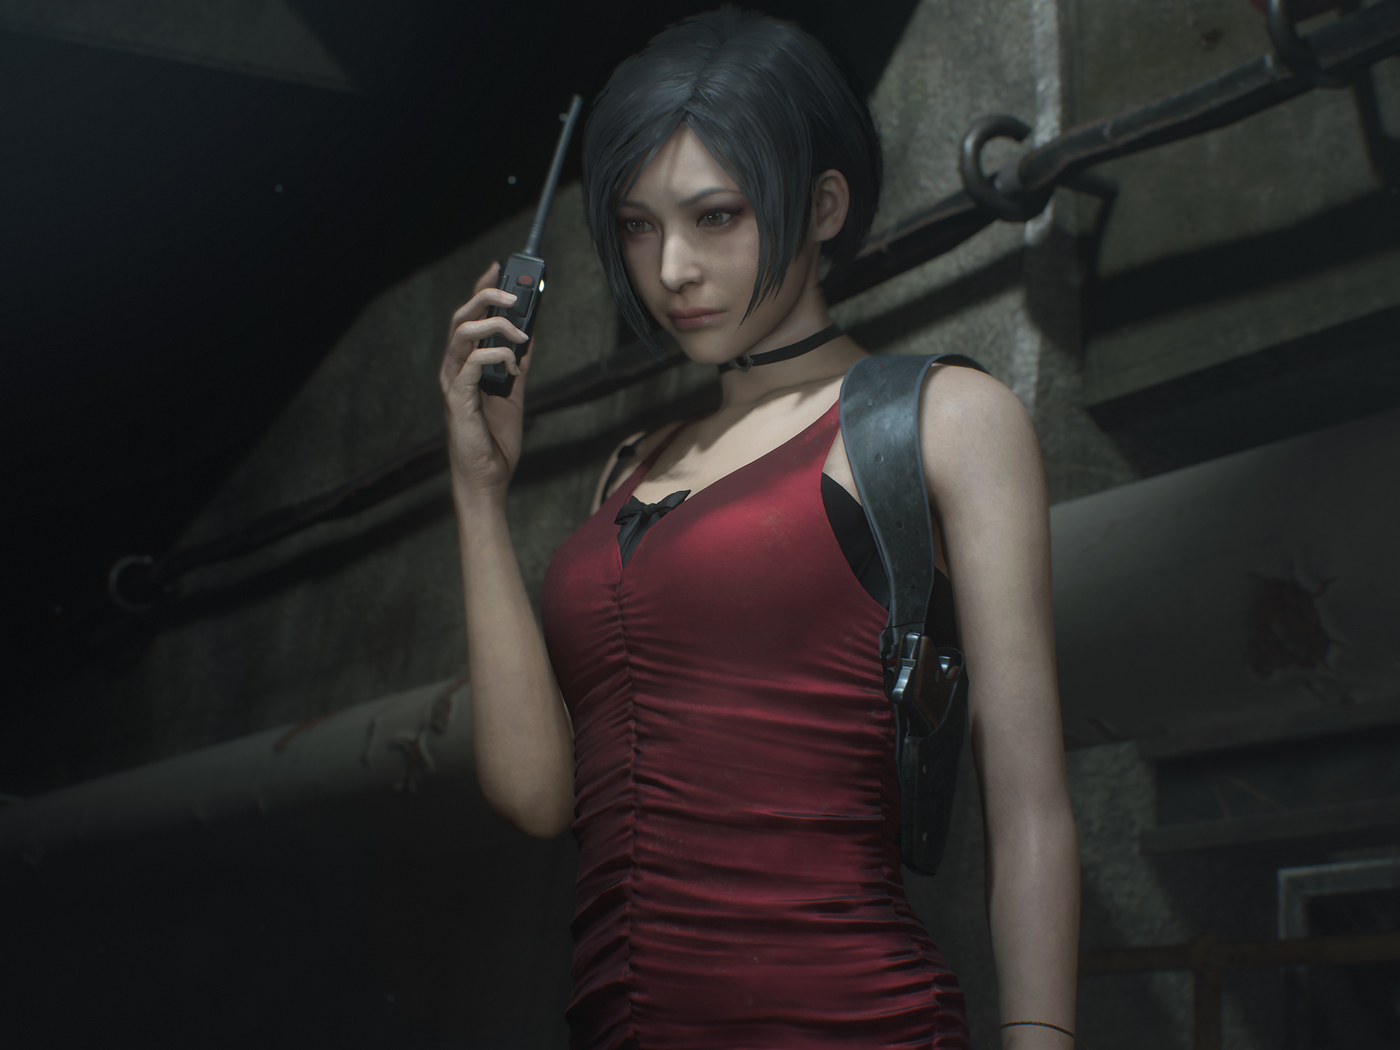 claire-redfield-resident-evil-2-2019-8d.jpg